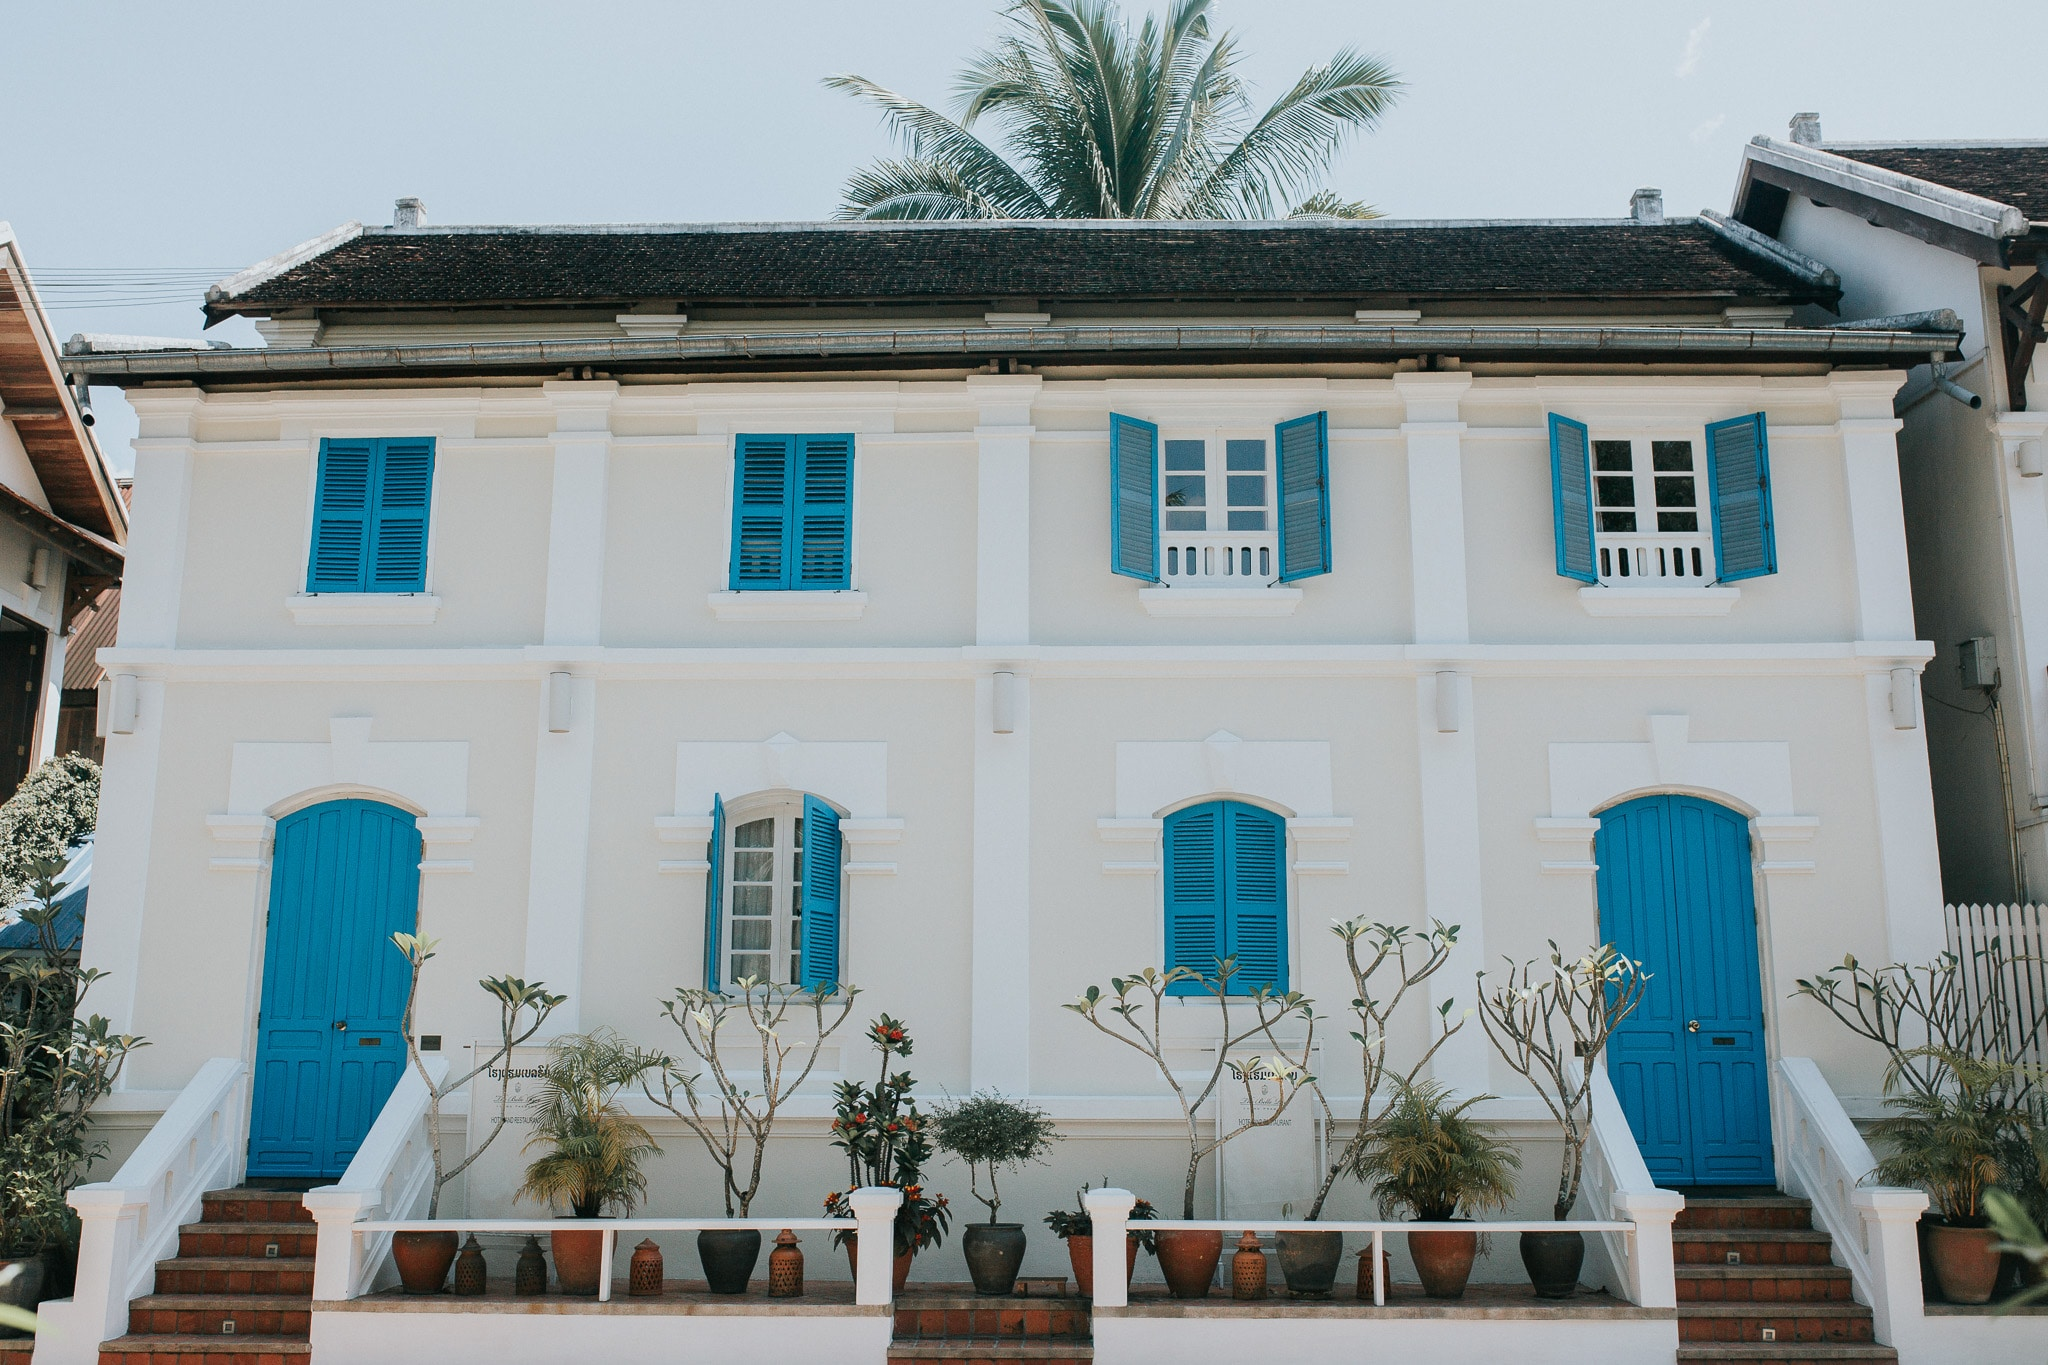 One week in Laos - Luang Prabang - White colonial house